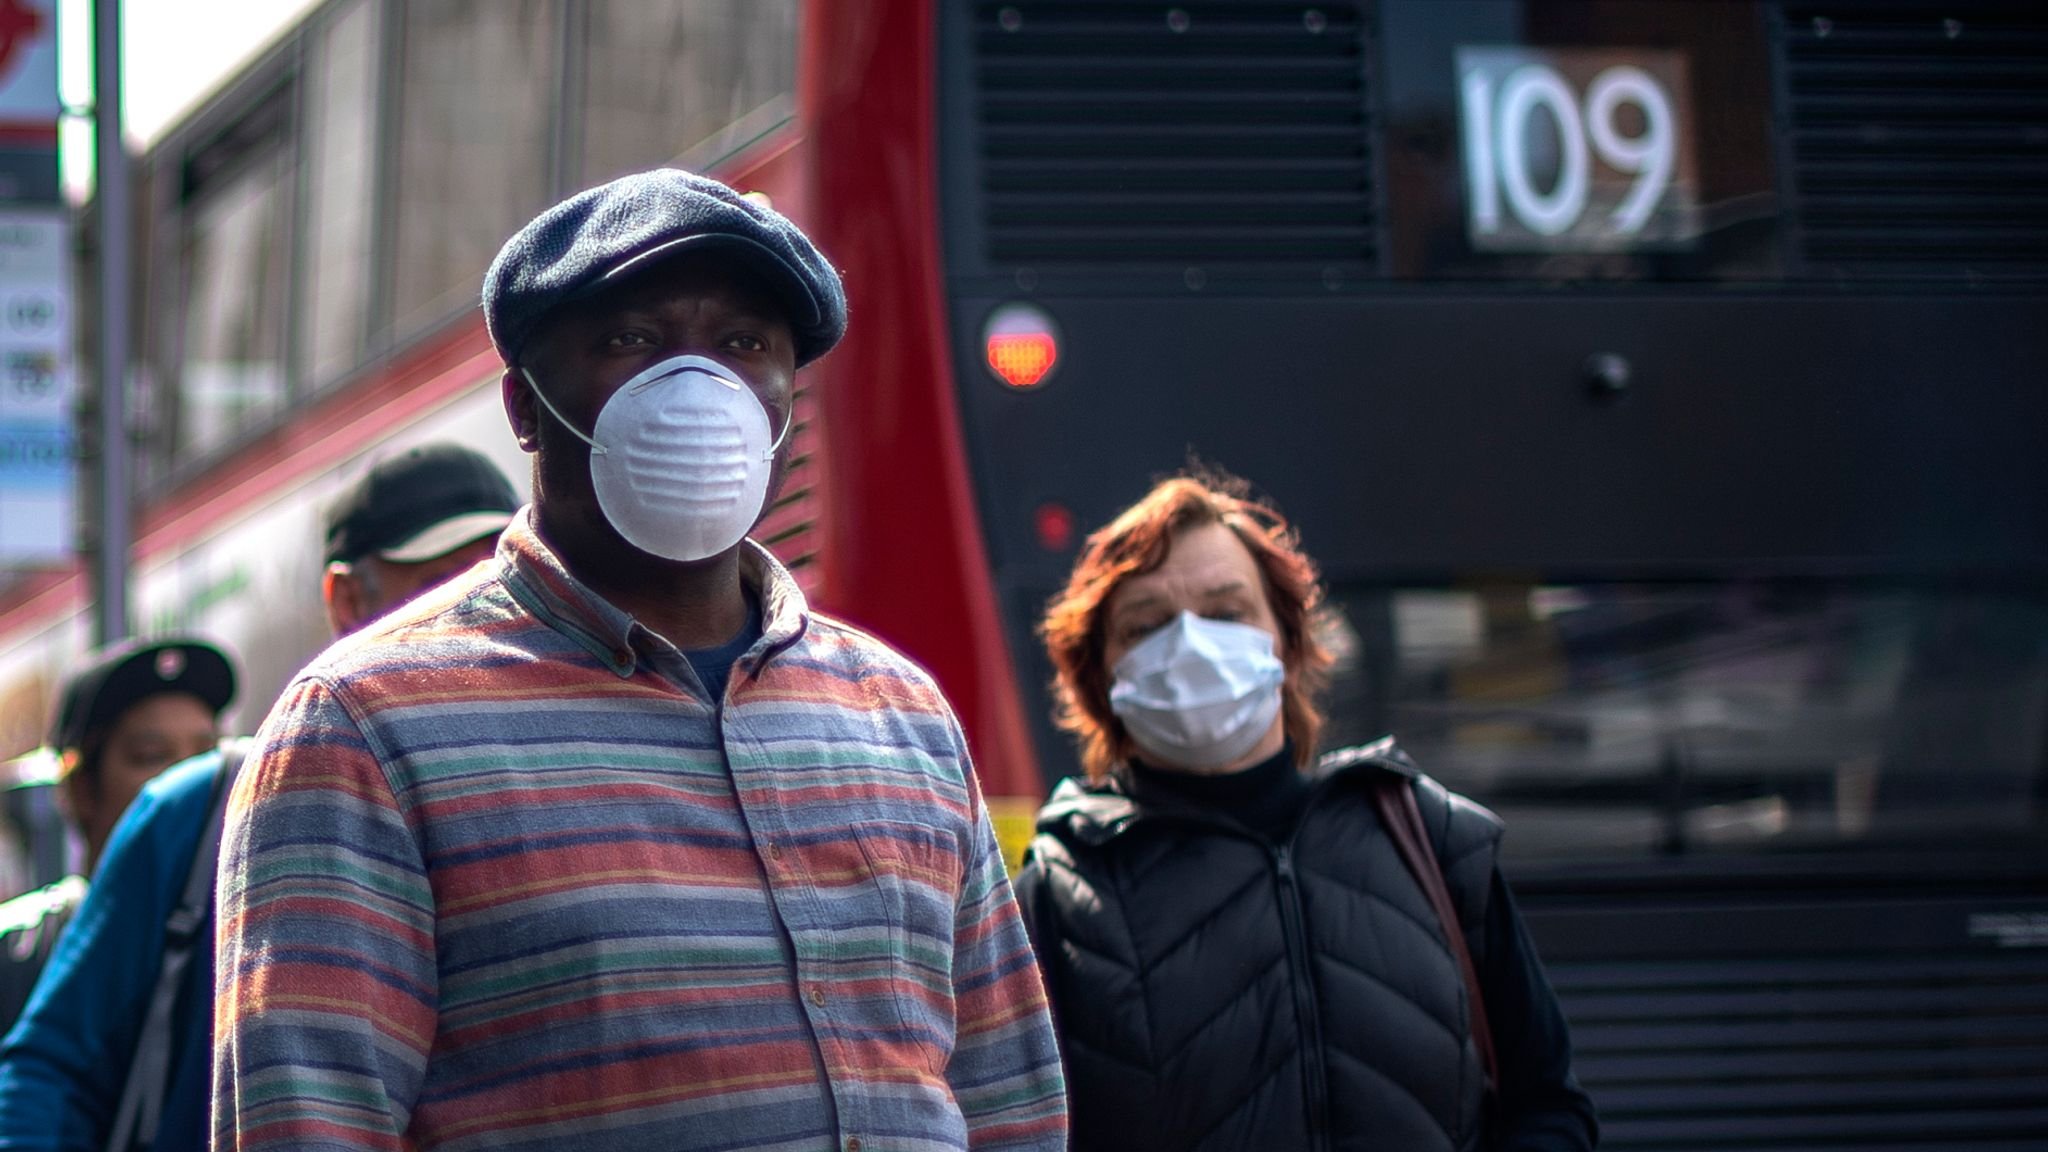 Coronavirus: Britons should wear cloth face coverings in public, health experts tell government | UK News | Sky News